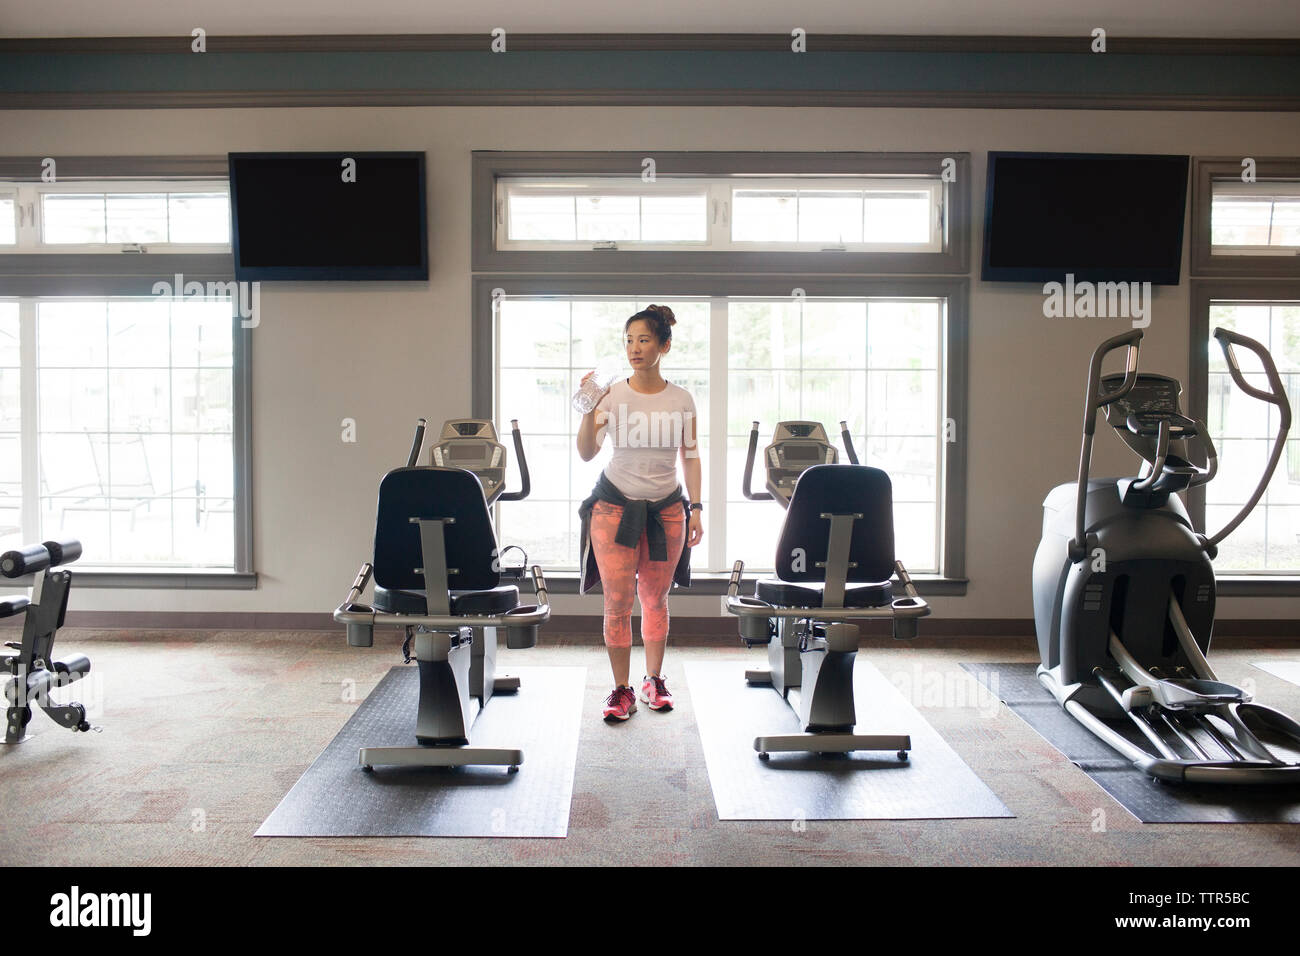 Woman drinking water while standing amidst machines at gym - Stock Image